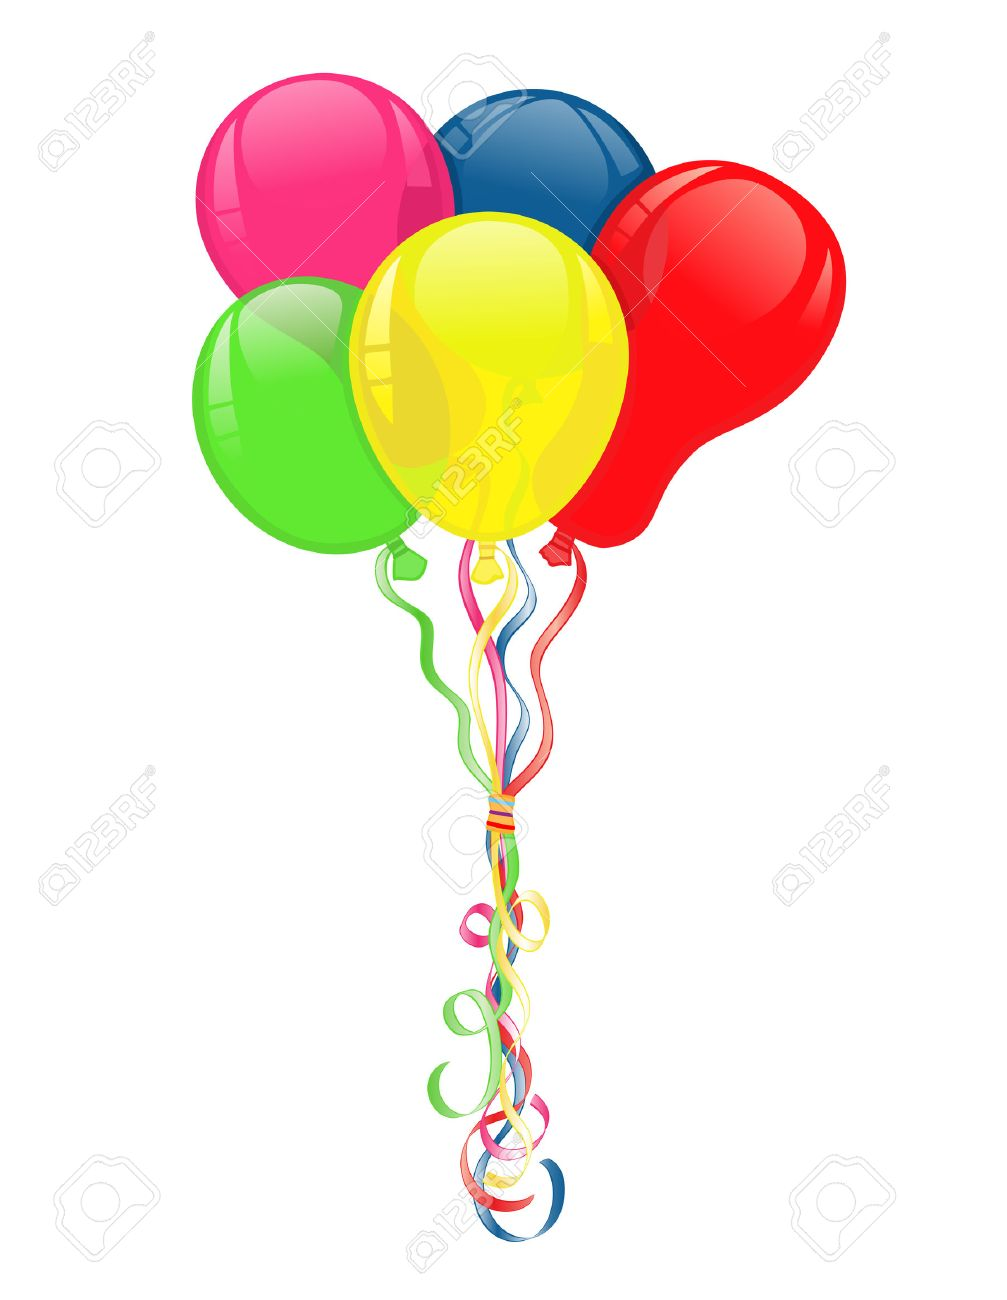 colorful balloons for party celebrations vector file saved as